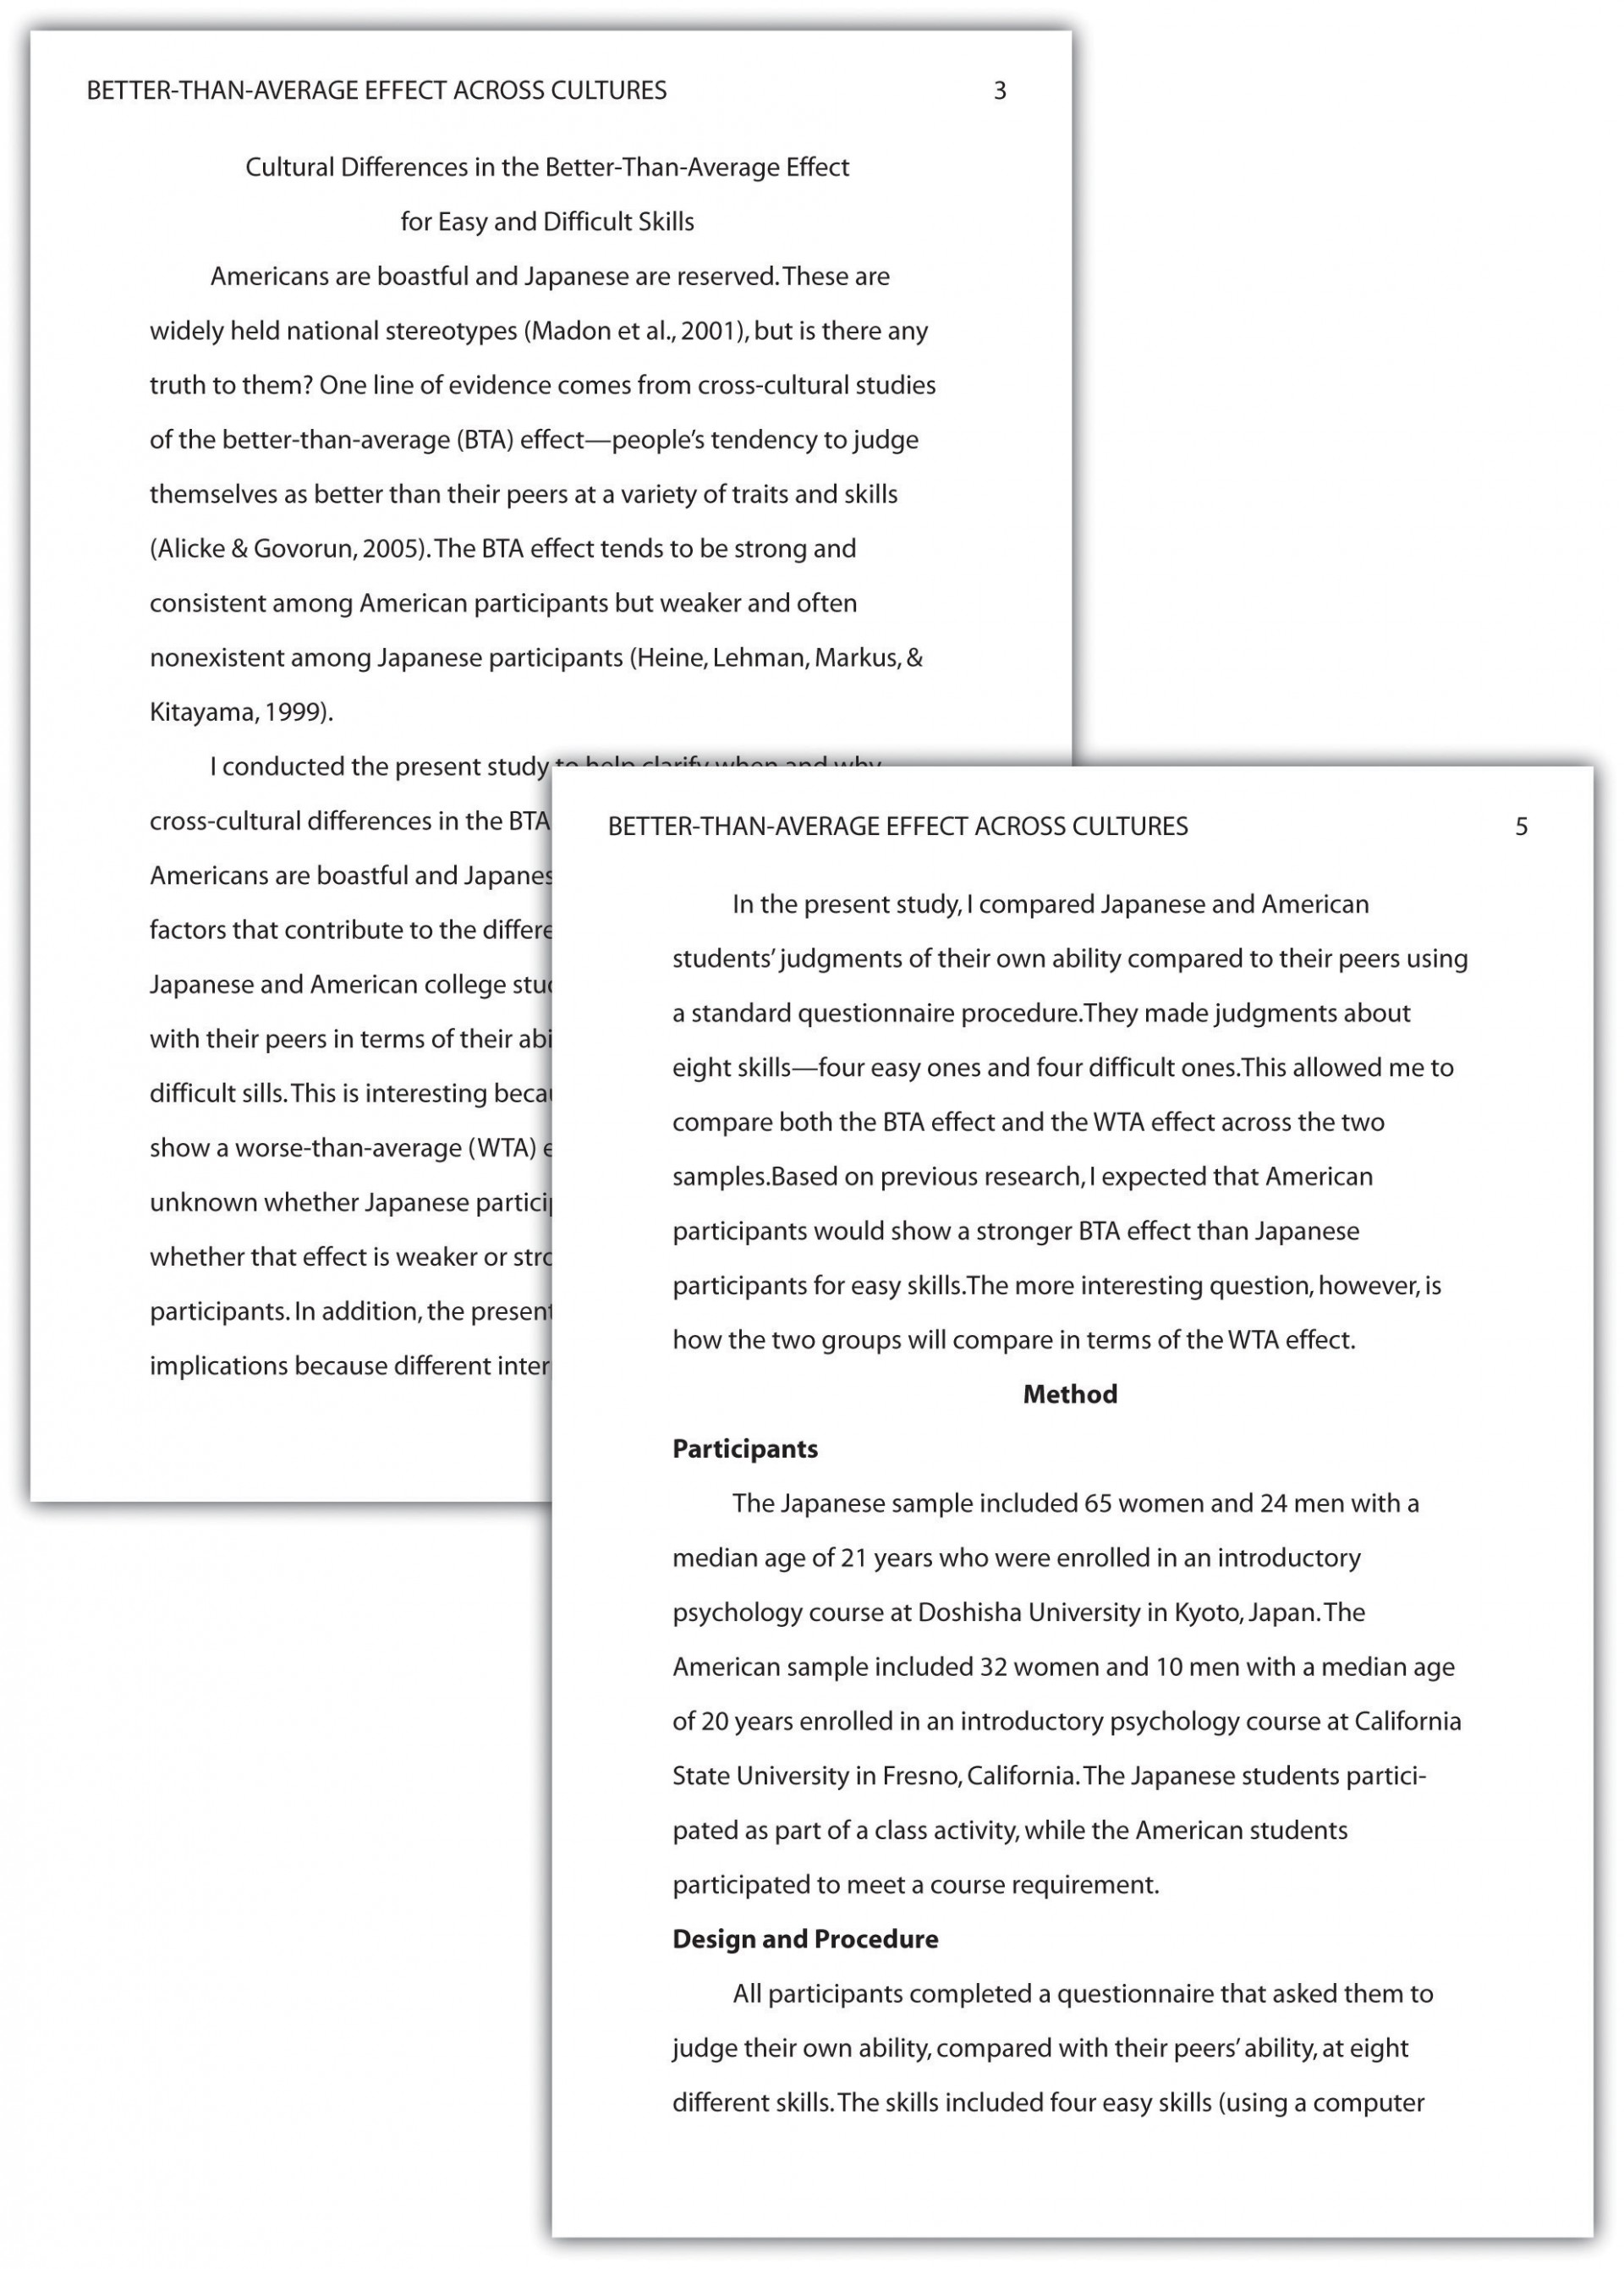 015 Research Paper English Marvelous Sample 102 Ap Example 1920